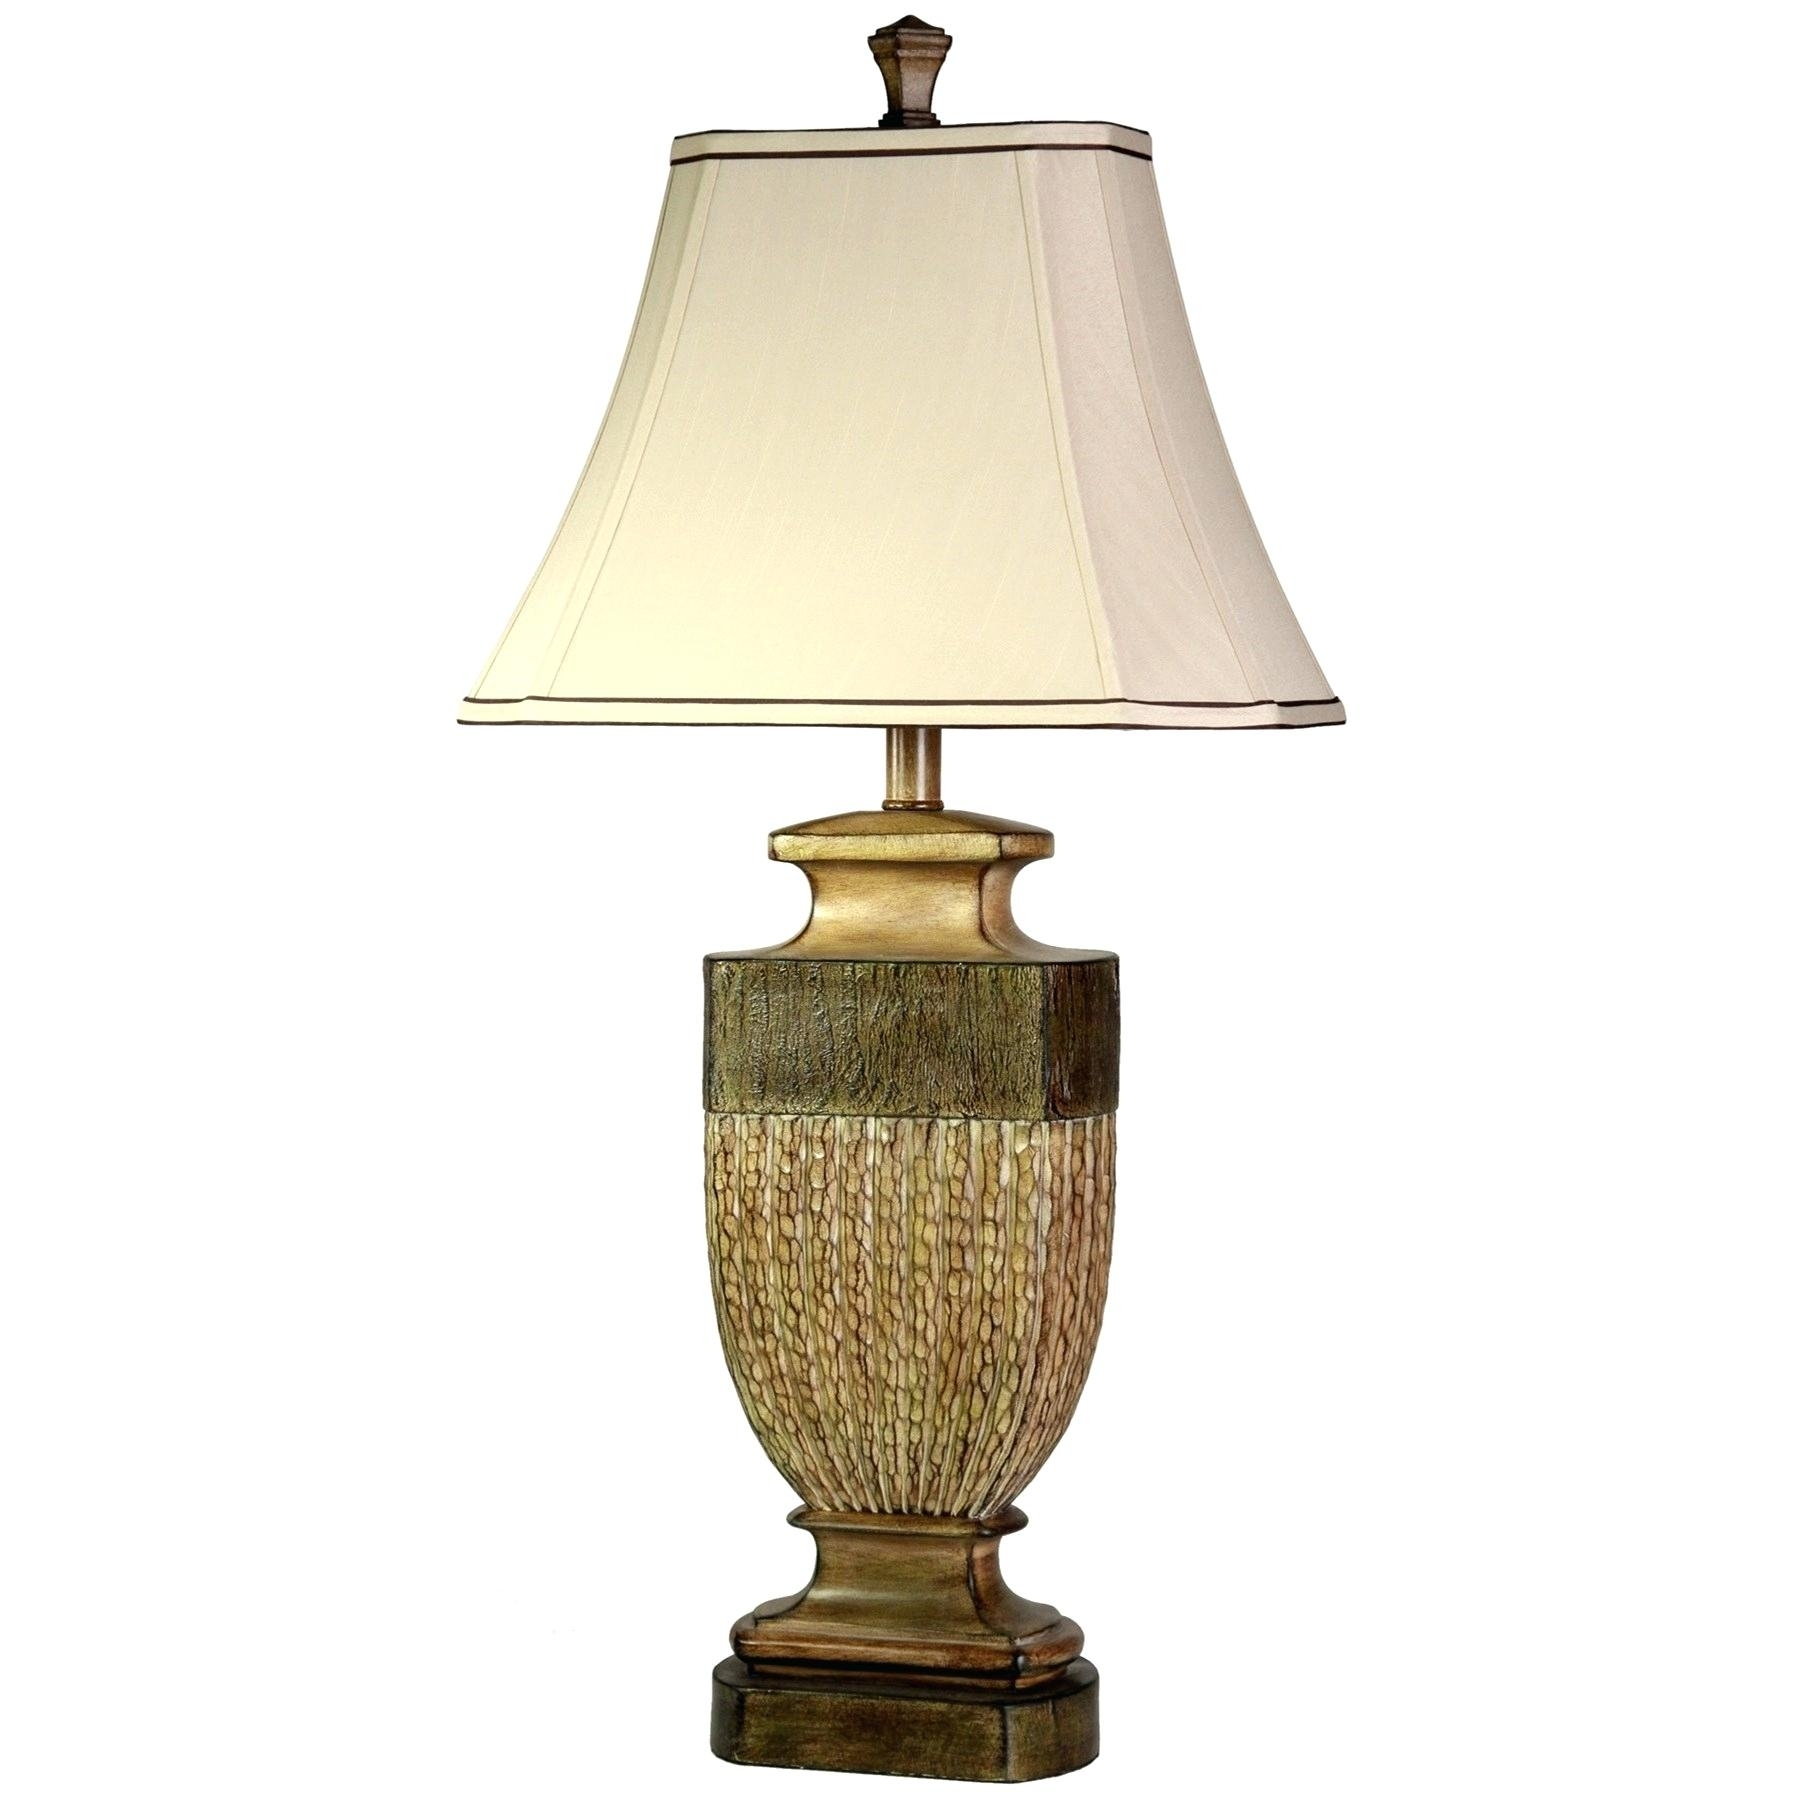 Traditional Table Lamps Porcelain Wonderful For Living Room Lamp Throughout Traditional Table Lamps For Living Room (#12 of 15)